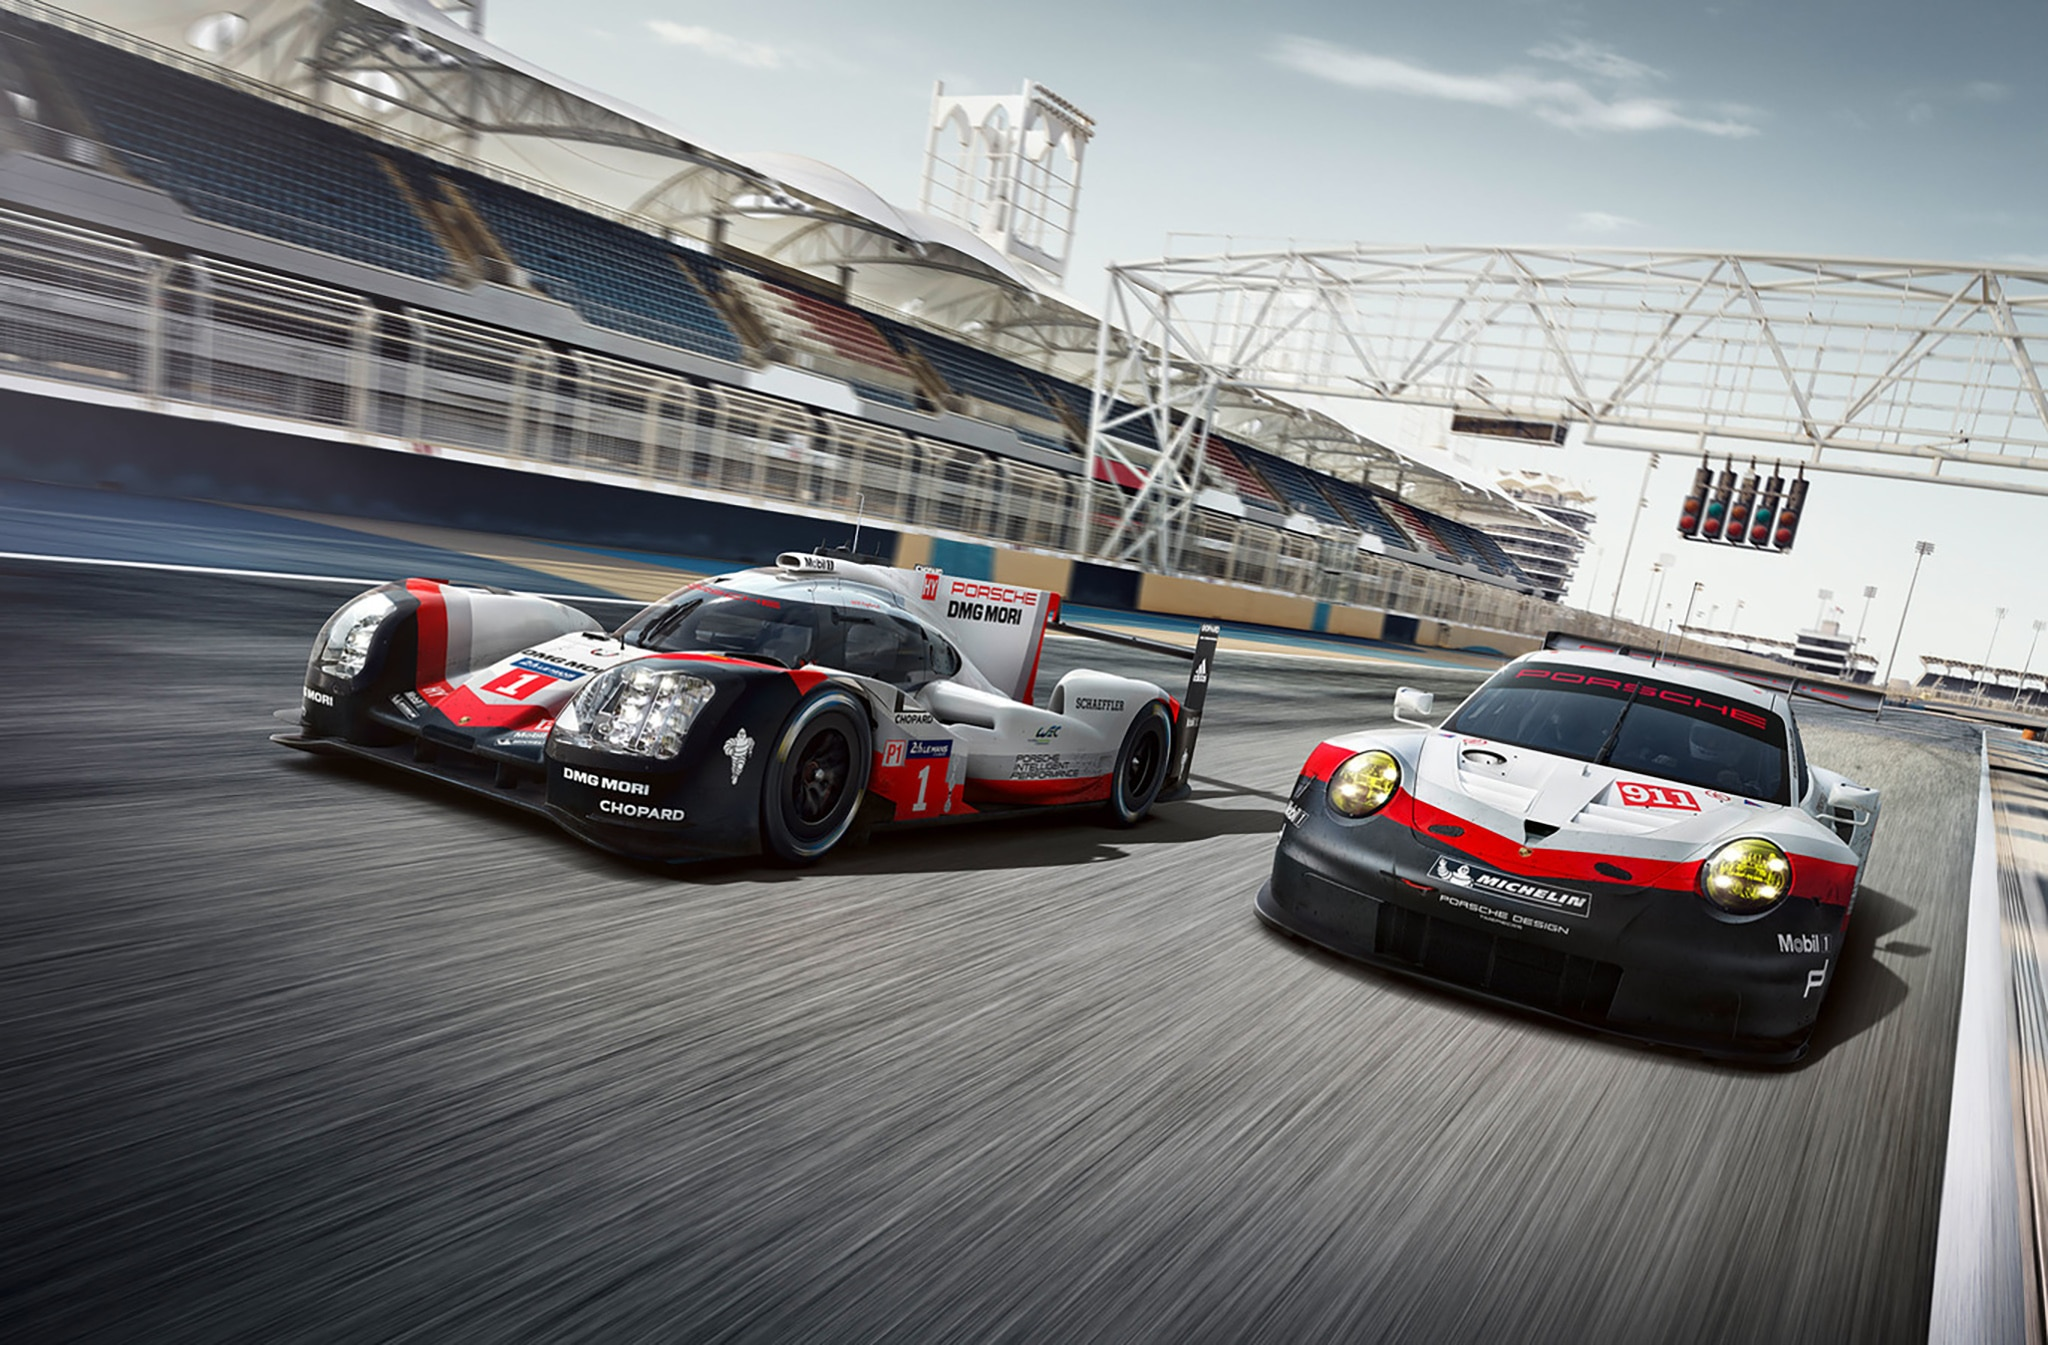 Porsche And Toyota Debut LMP1 Race Cars Ahead Of